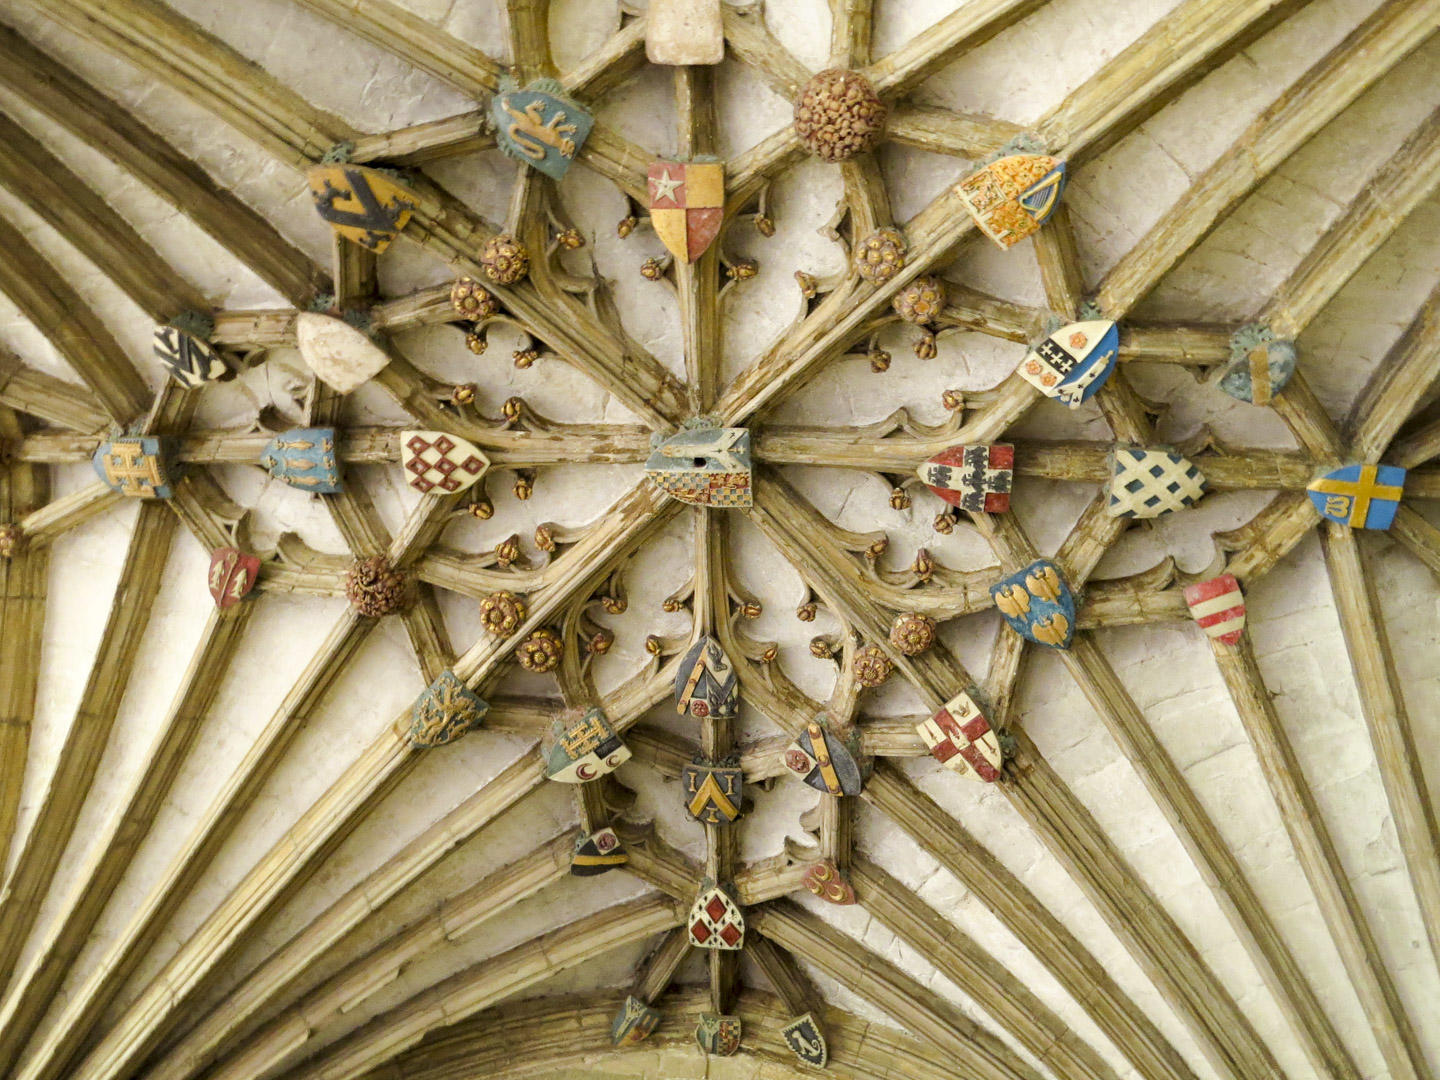 A ceiling in the cloisters of Canterbury Cathedral decorated with coats of arms